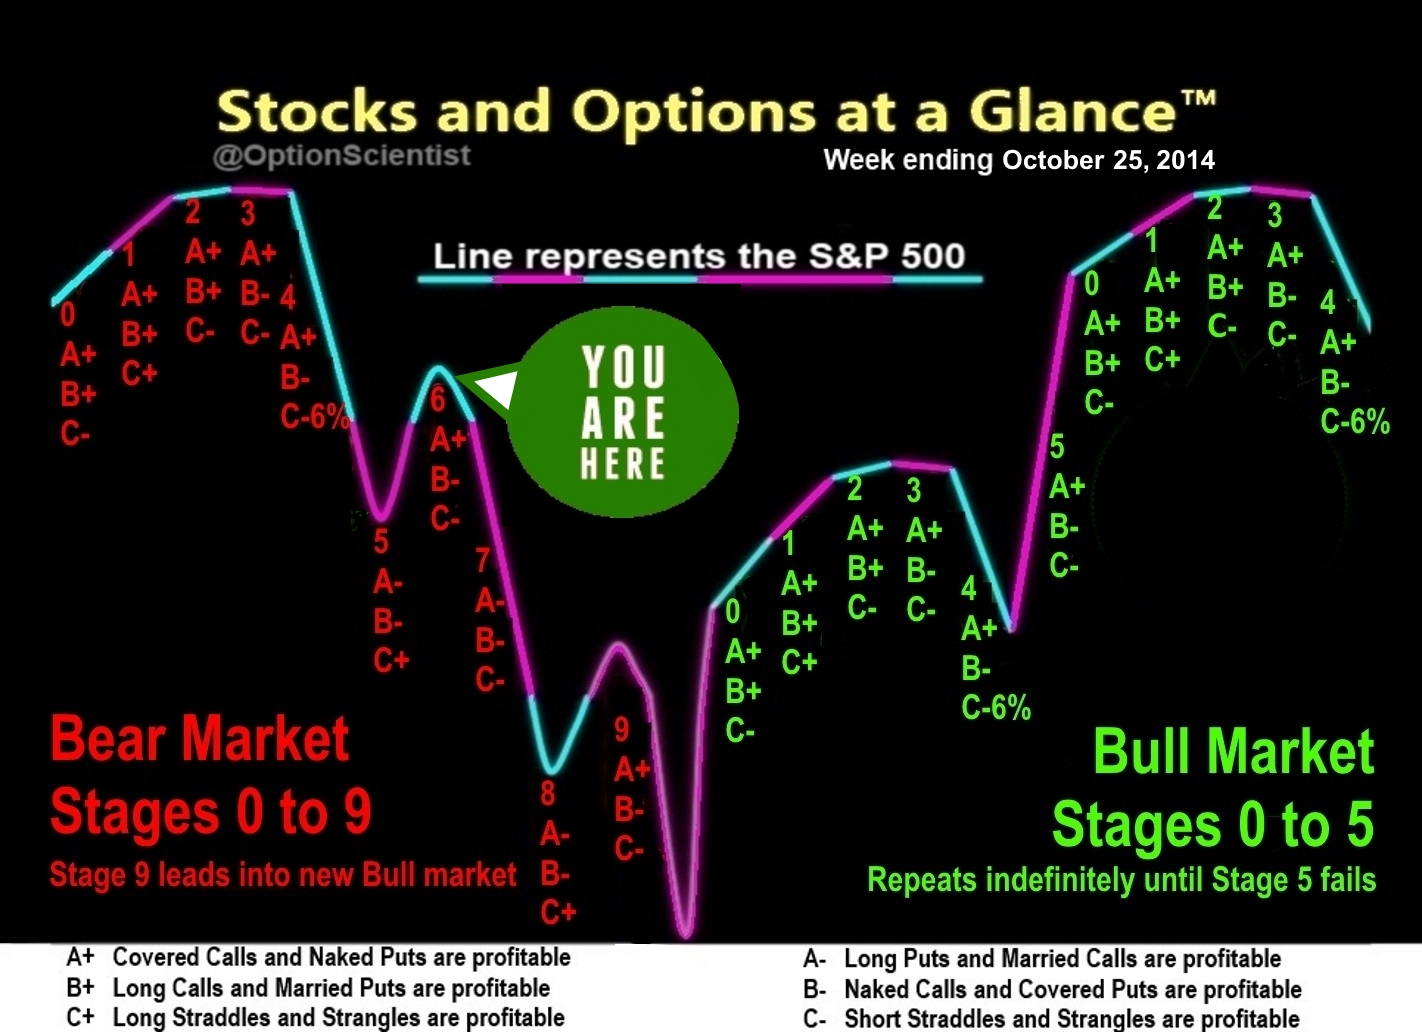 Stocks and Options at a Glance 10-25-14